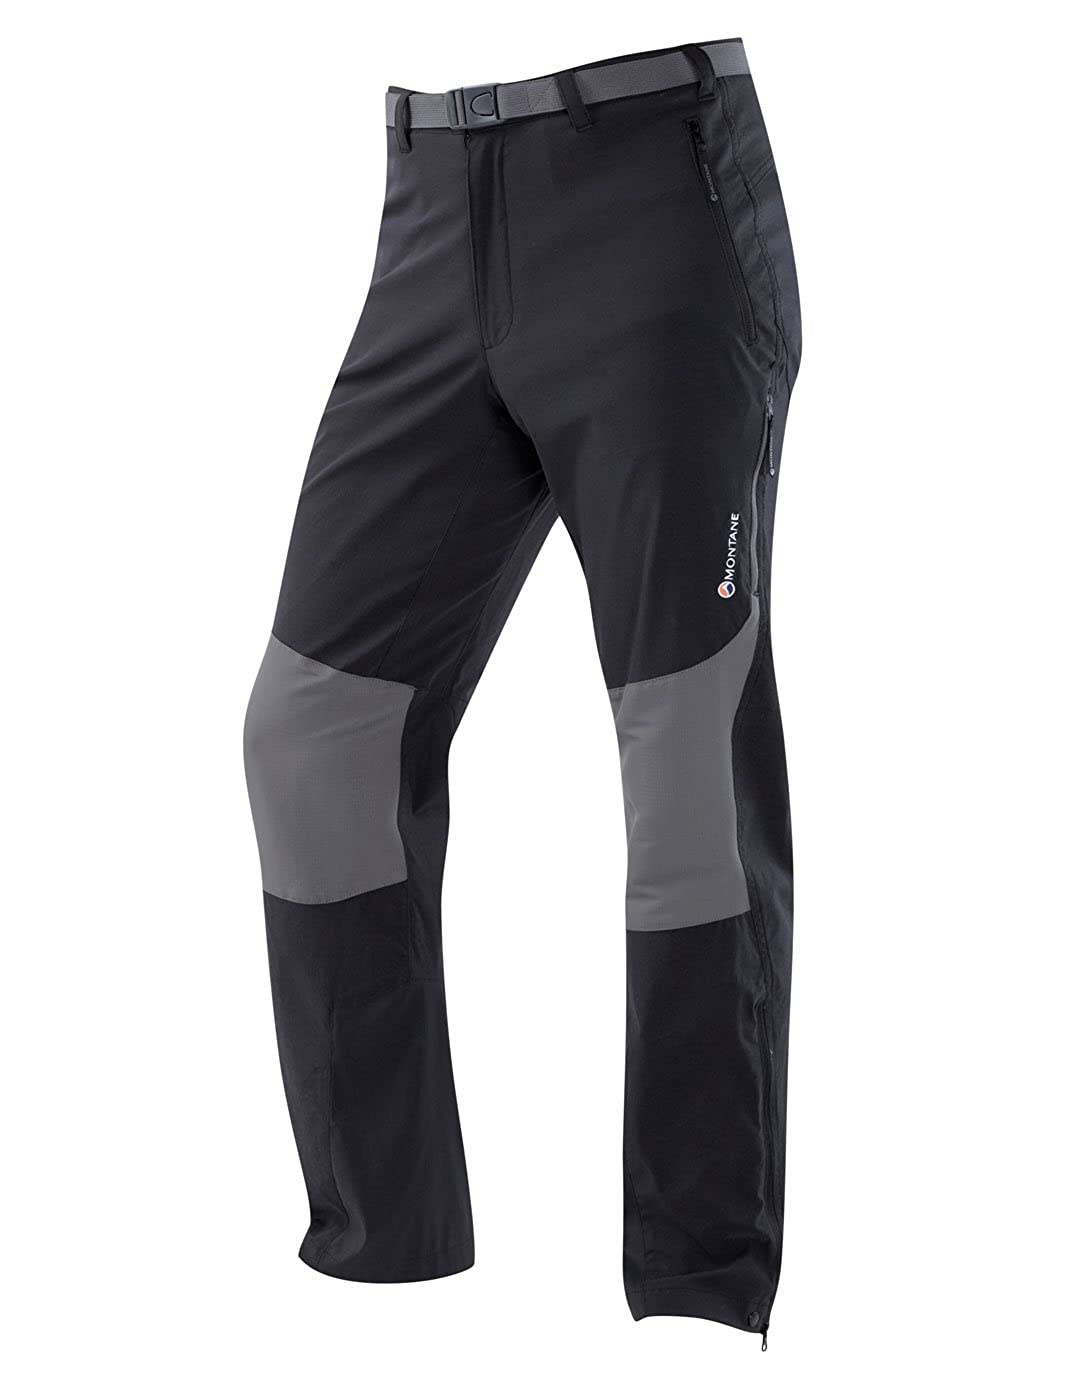 Montane Terra Stretch Hose (Regular Leg) - AW18